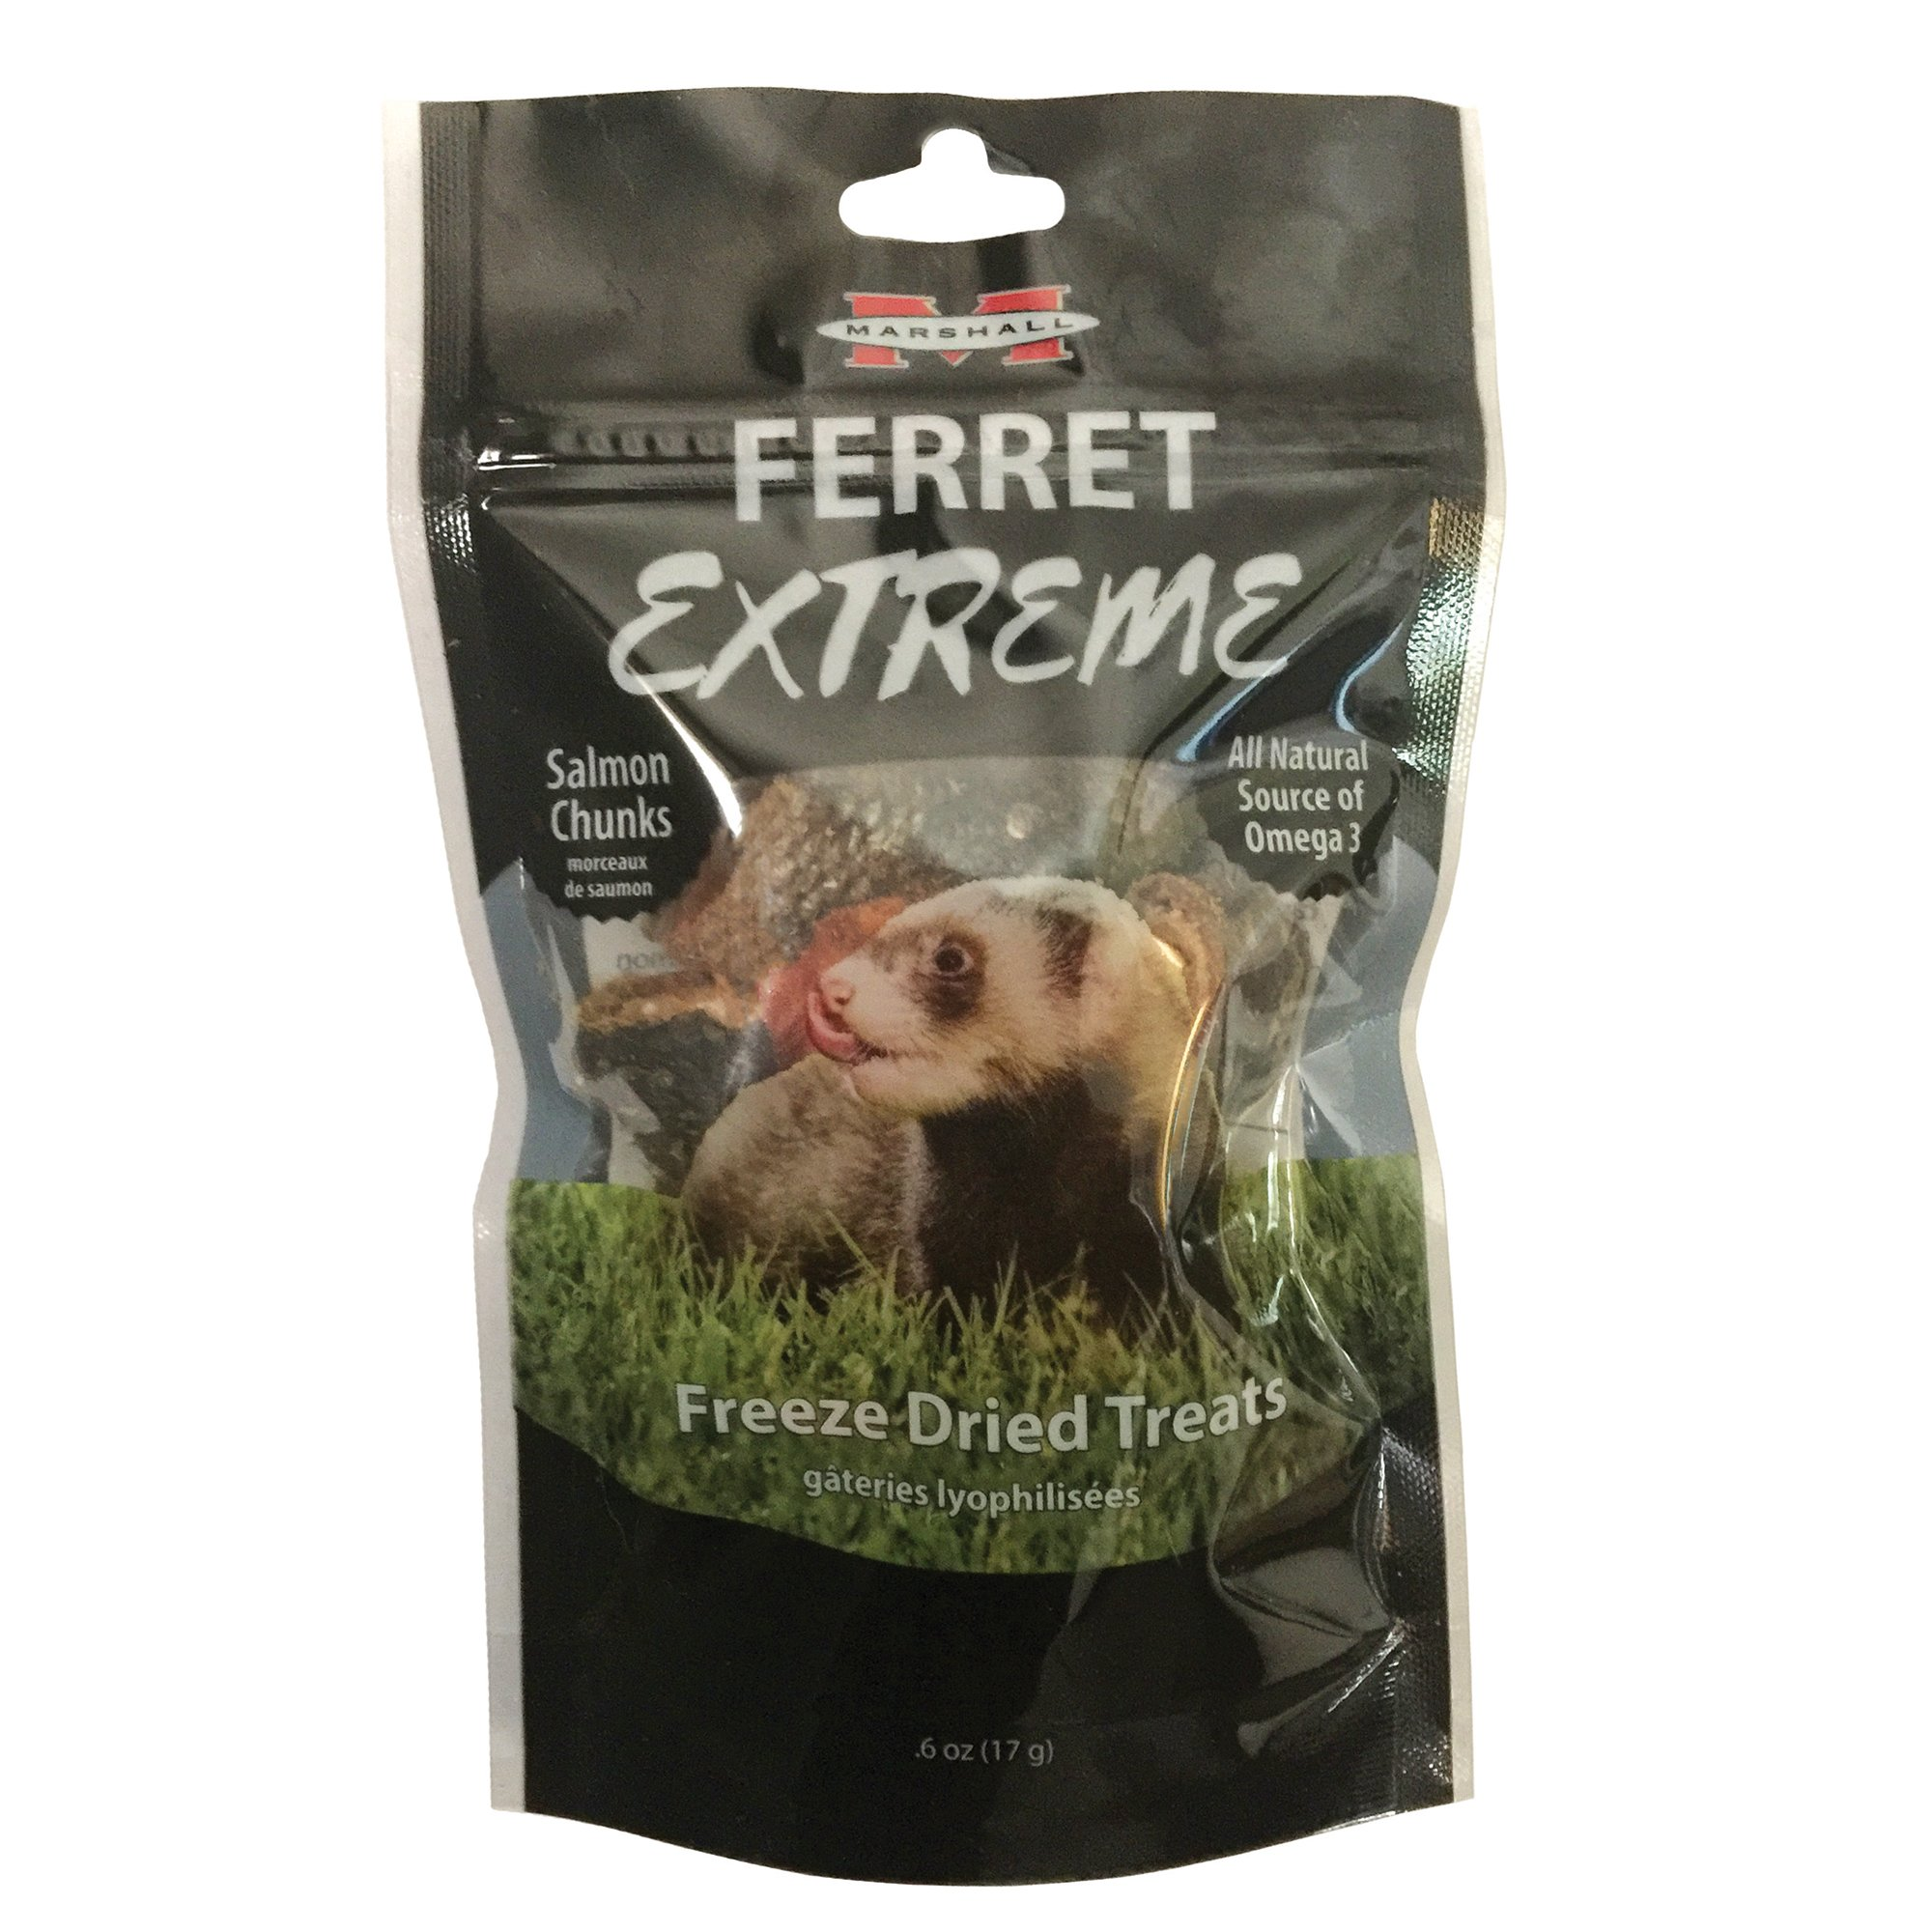 UPC 766501004236 product image for Marshall Ferret Extreme Freeze Dried Salmon Chunks Flavored Treats, 0.0375 lbs. | upcitemdb.com